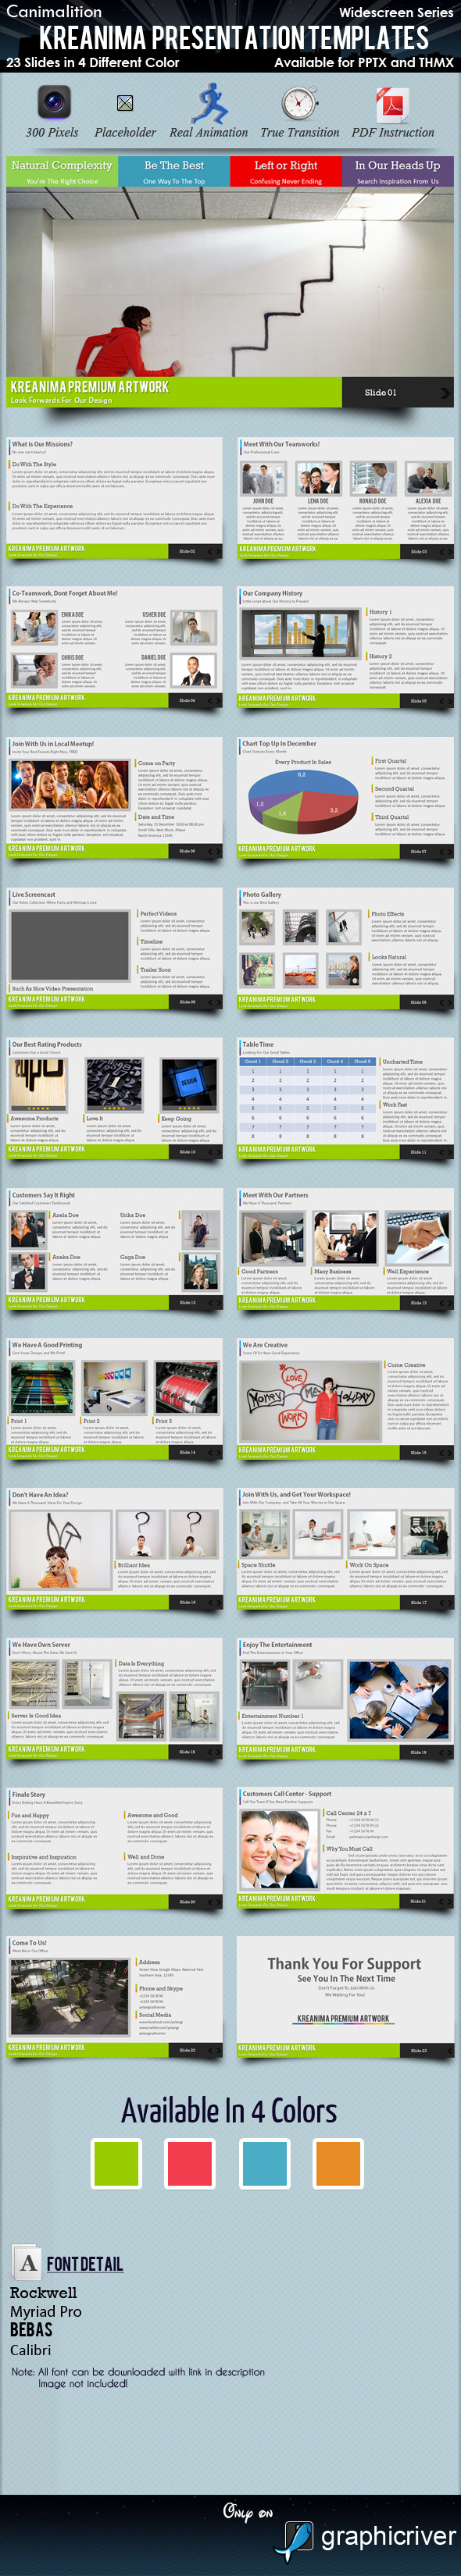 Kreanima Presentation Templates - Creative PowerPoint Templates